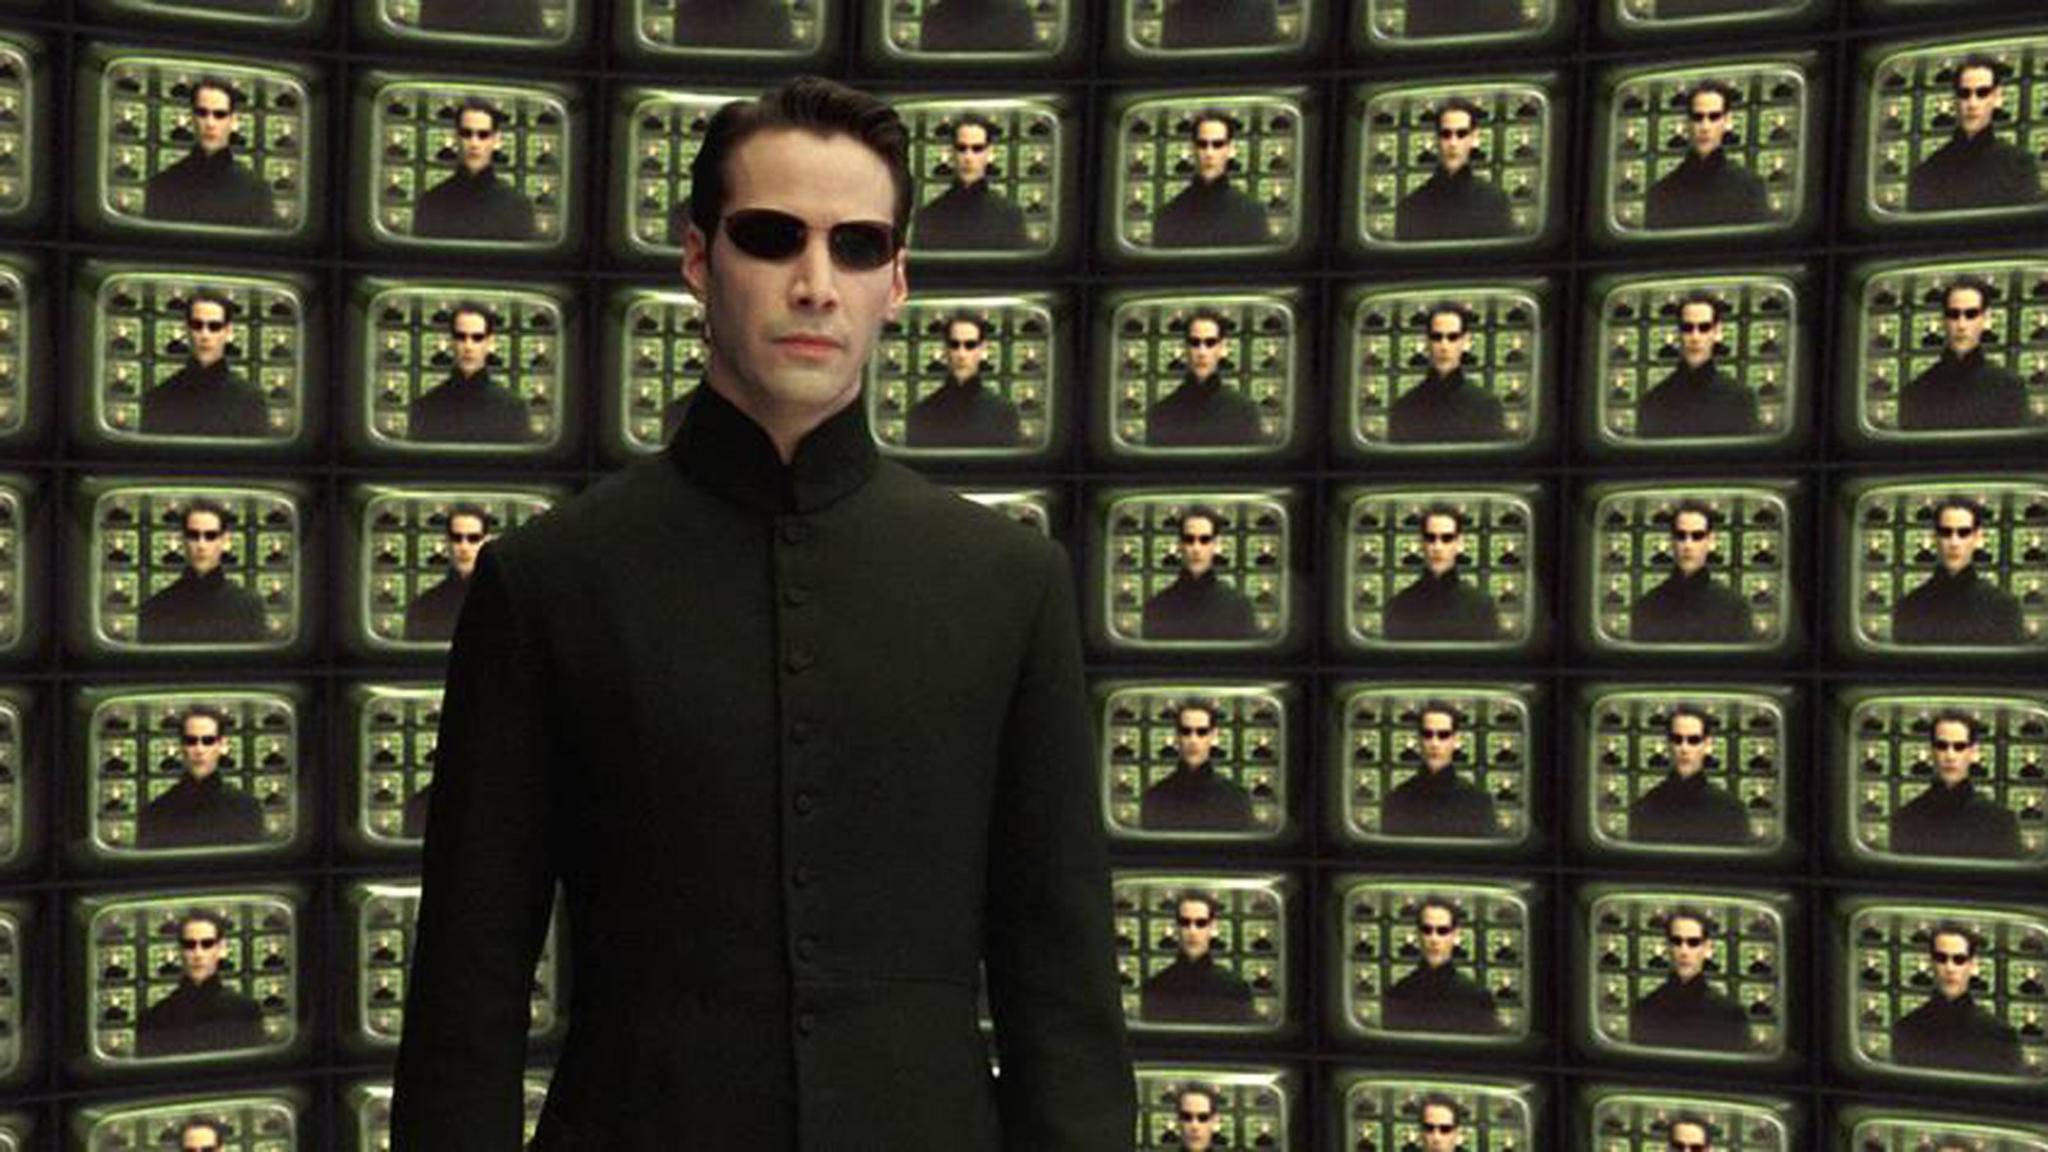 Matrix Keanu Reeves